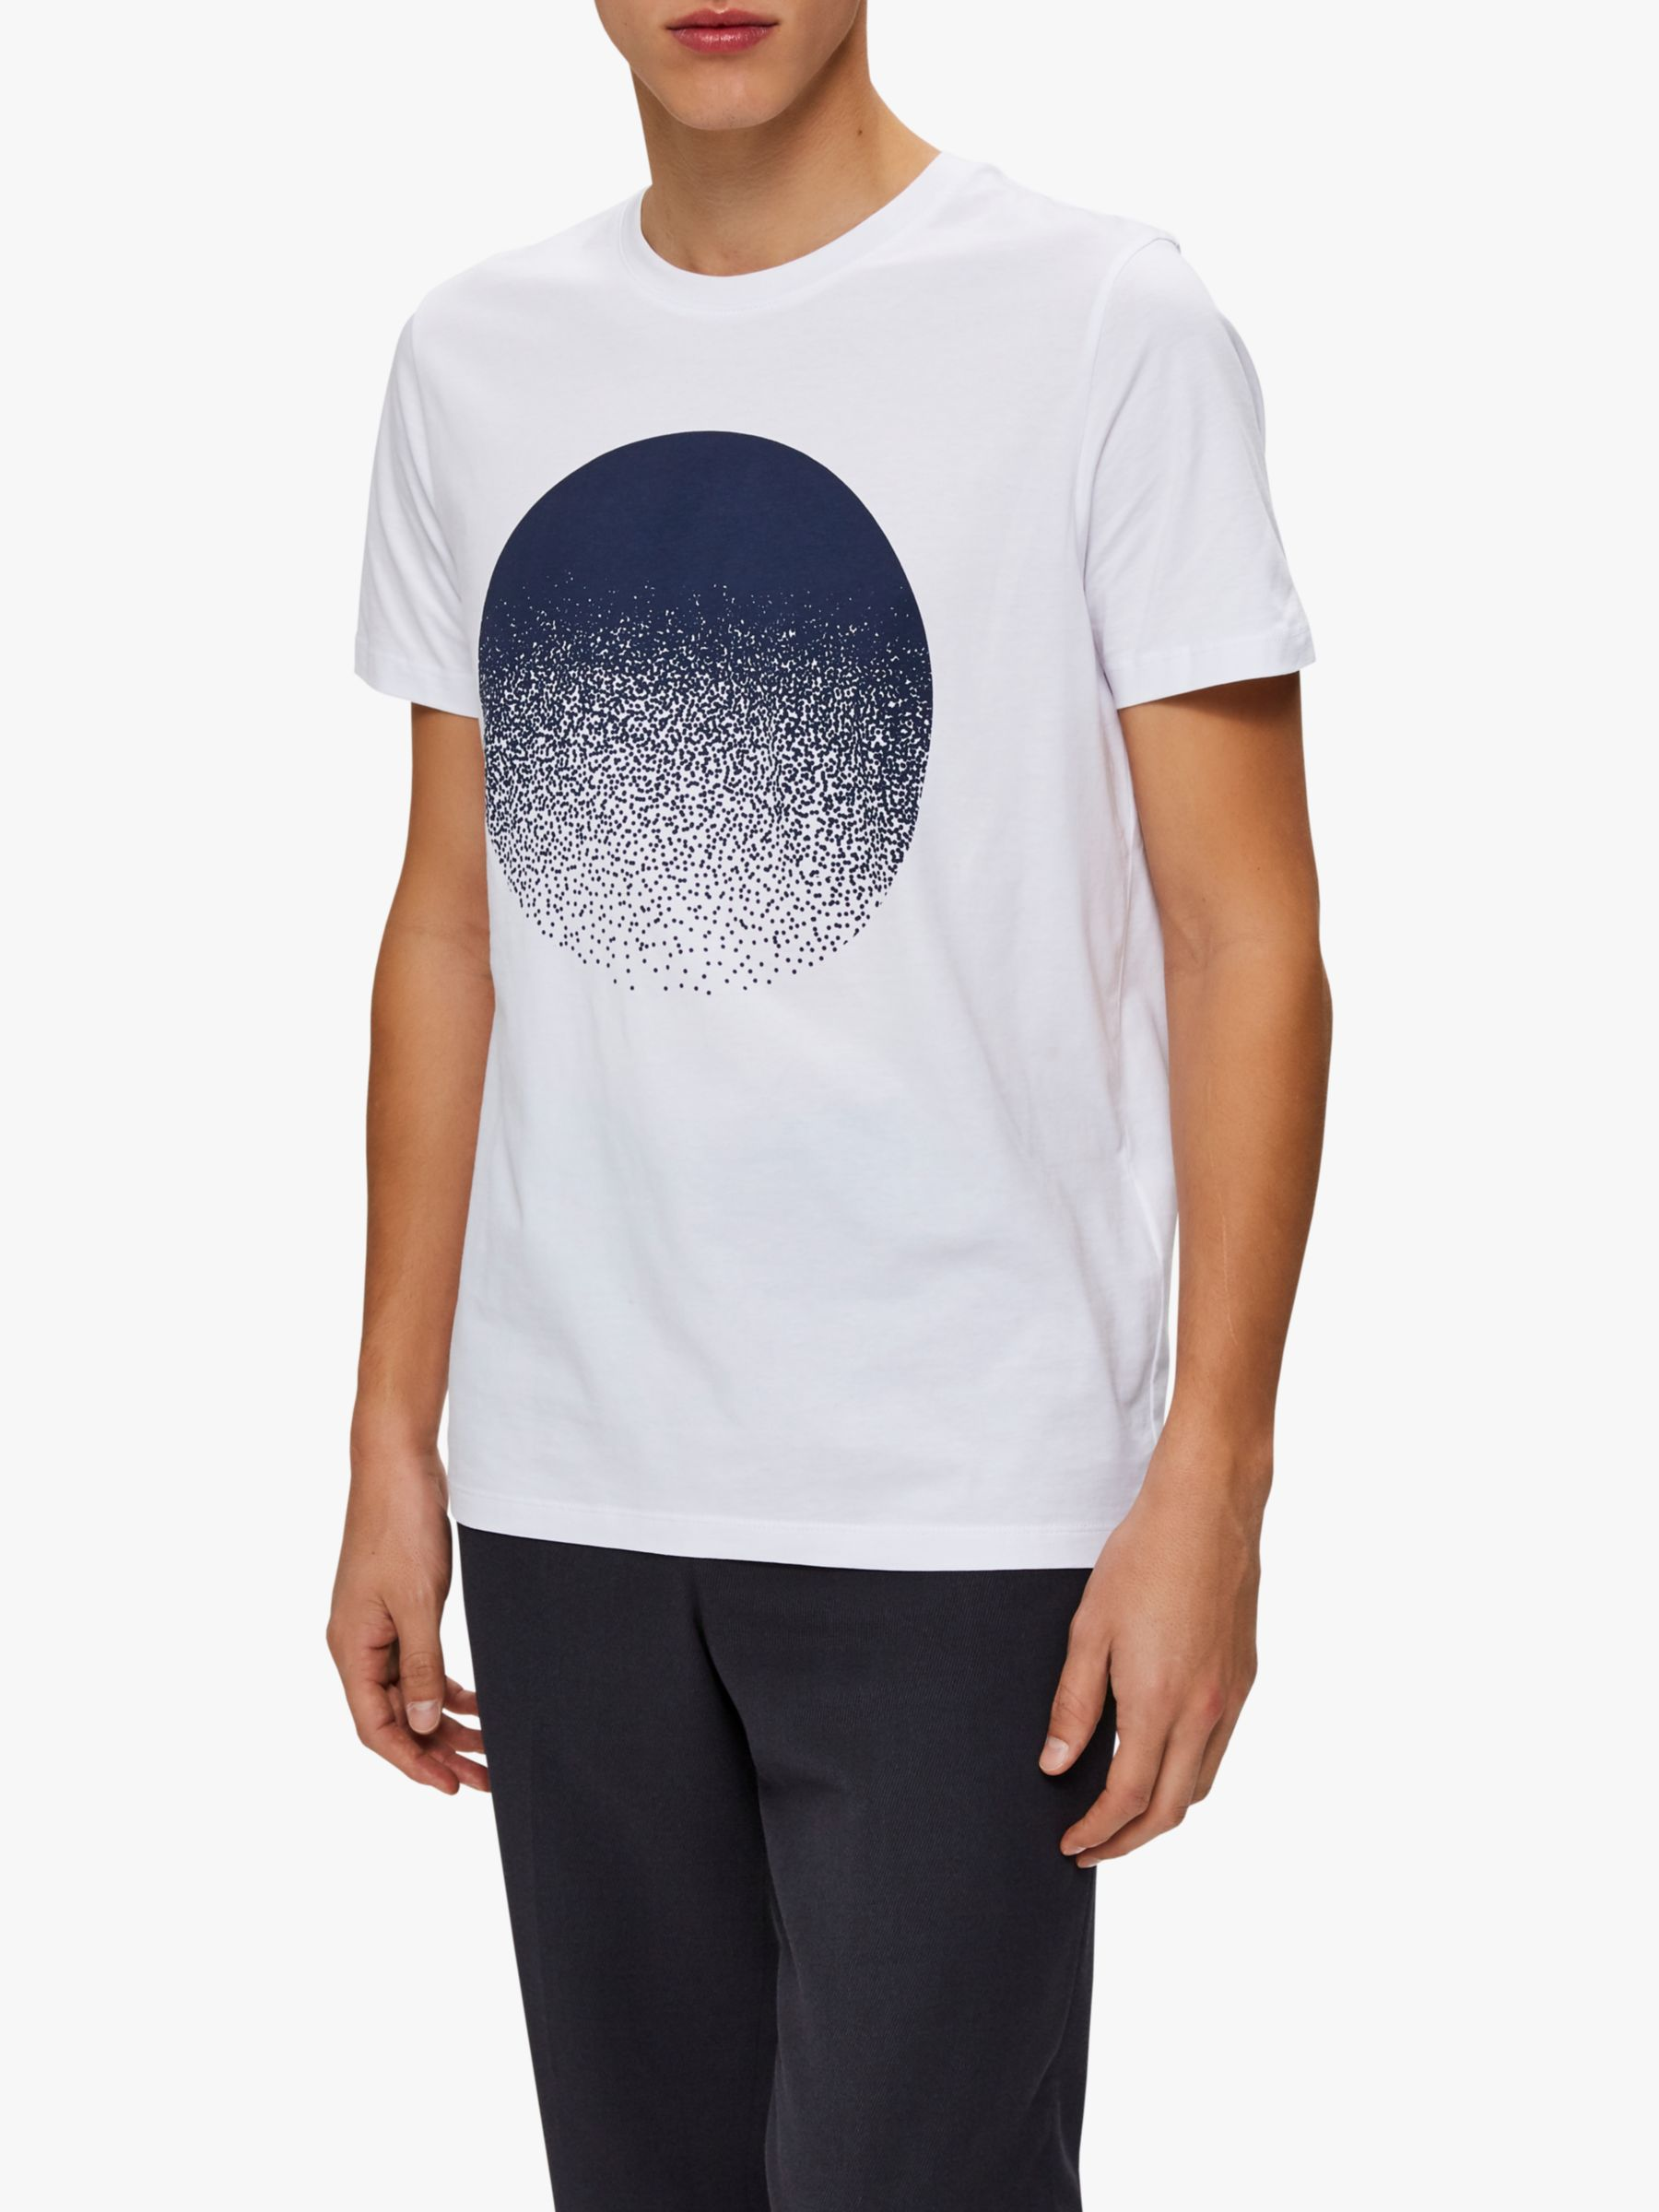 Selected Homme SELECTED HOMME Graphic Print Cotton T-Shirt, Bright White